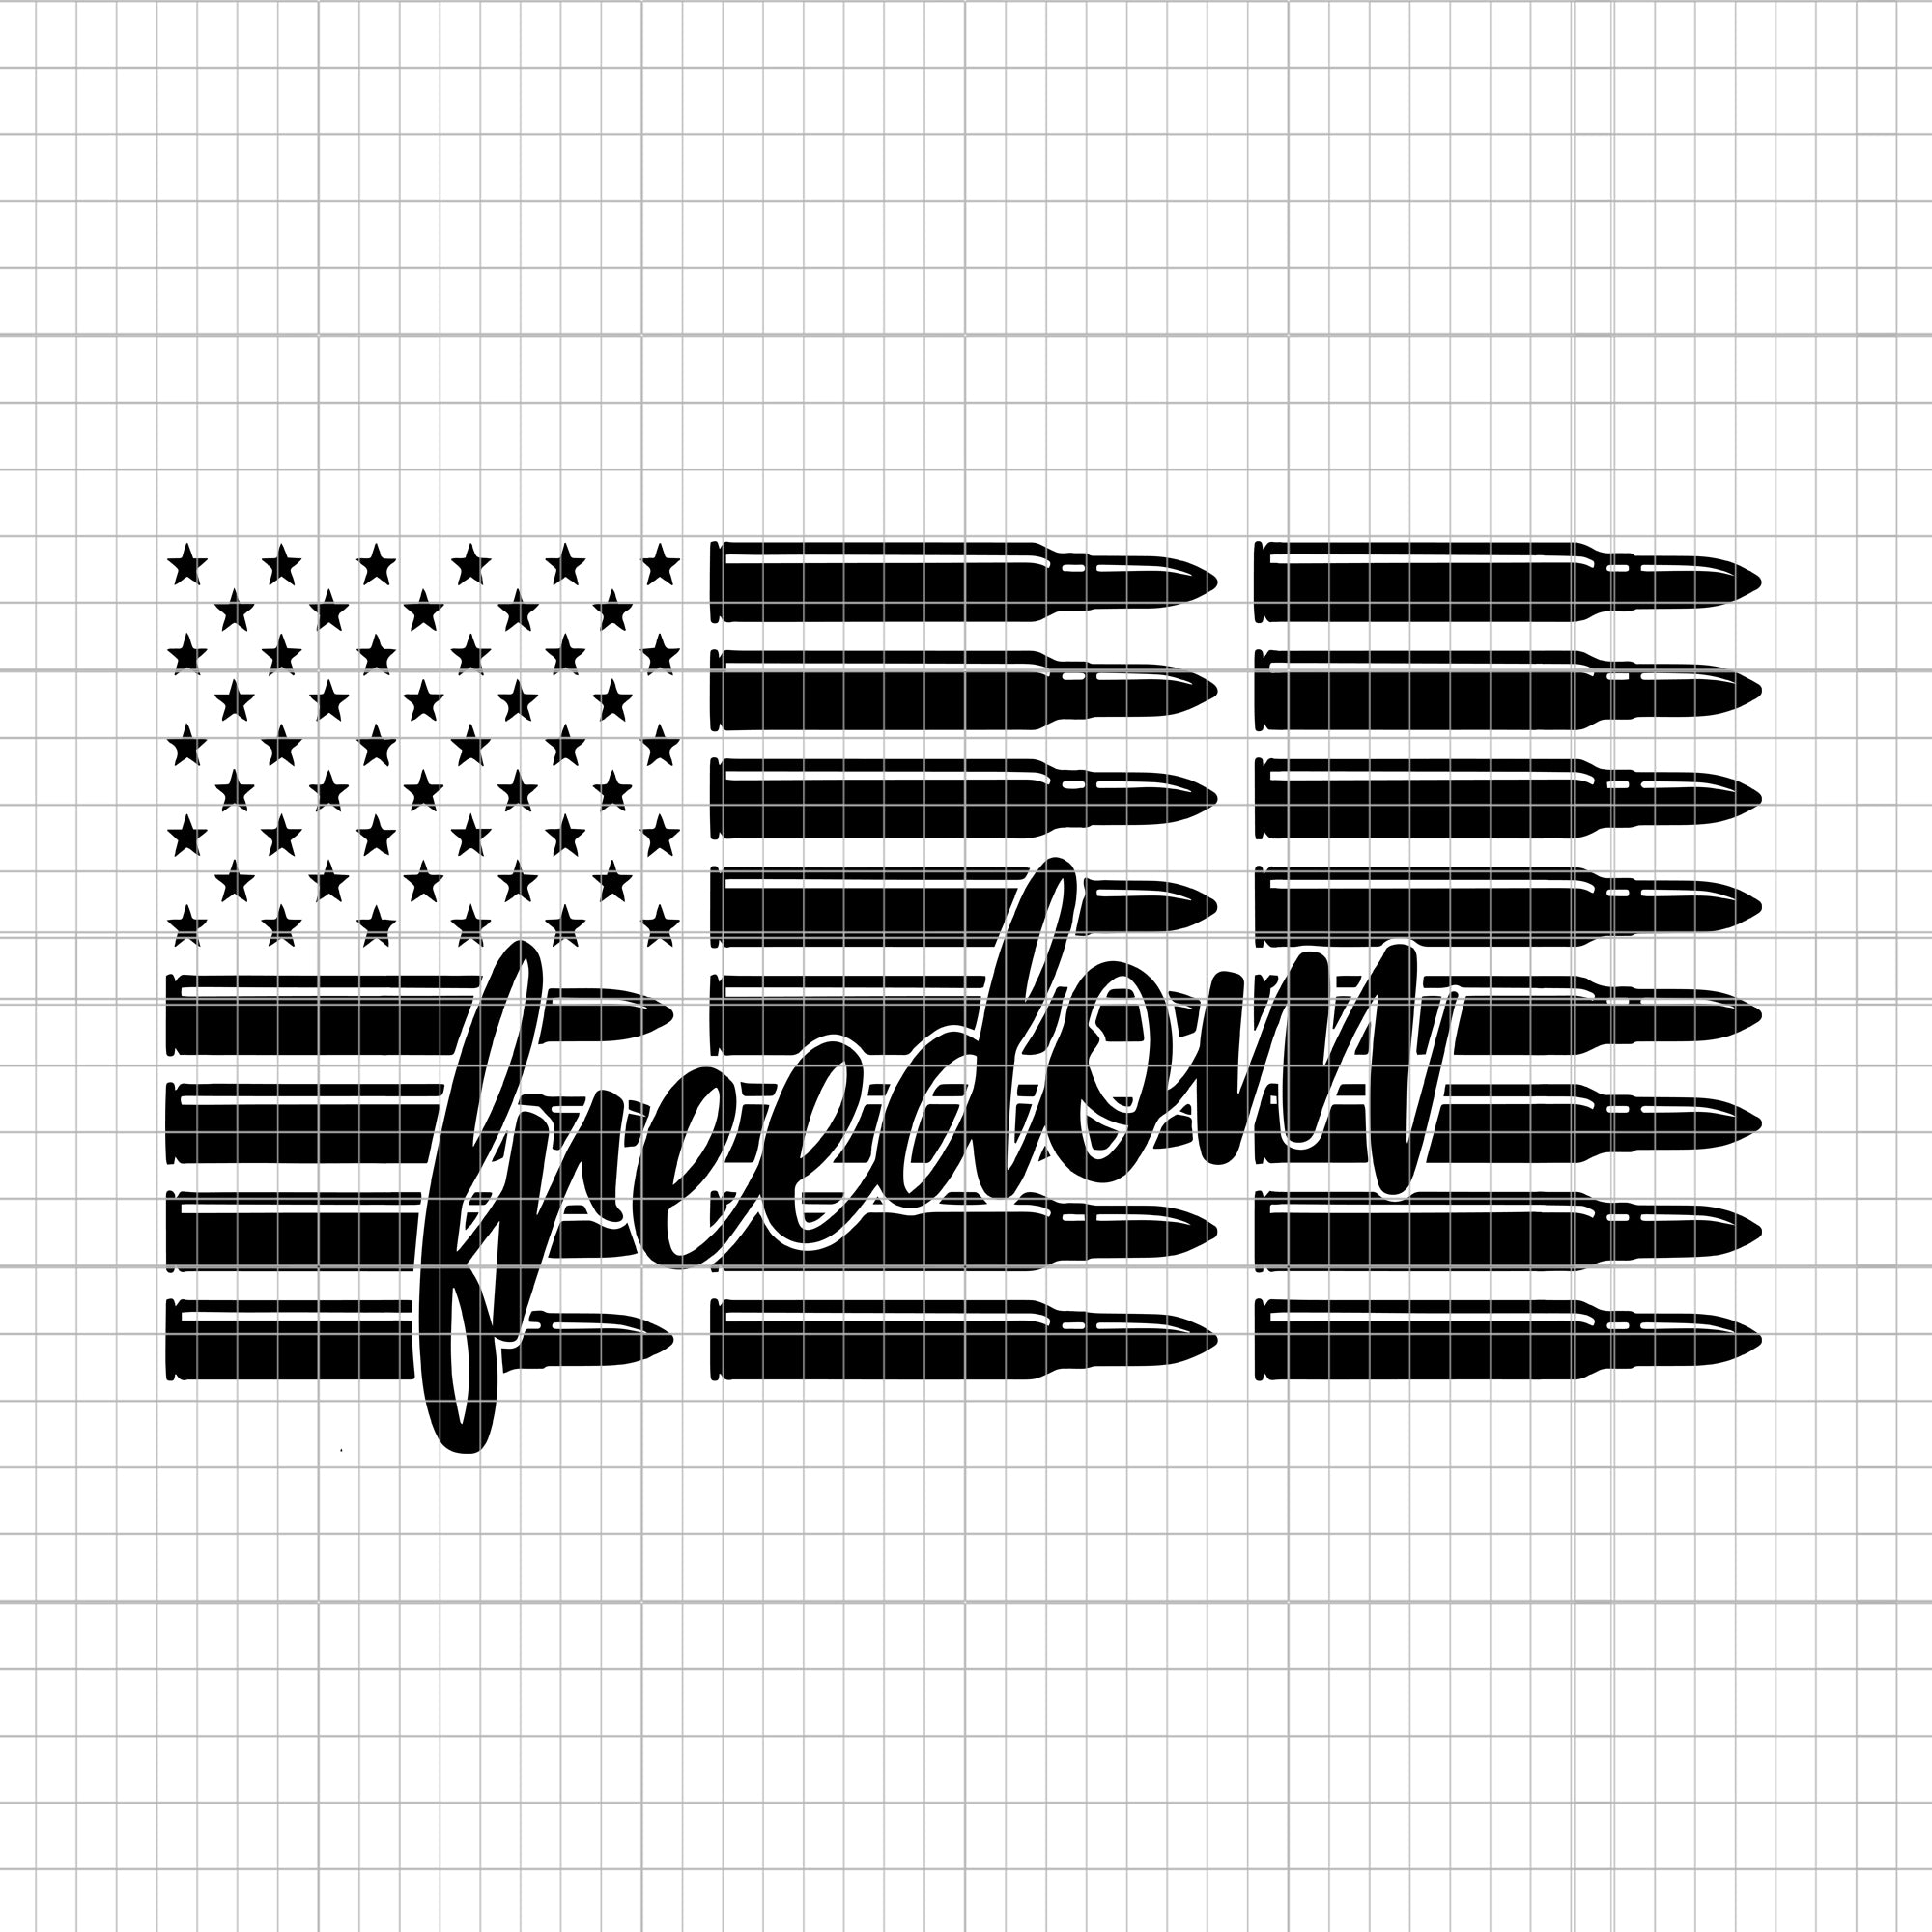 American fla, American flag svg, bullet flag svg, distressed flag svg, usa flag svg, 4th of july svg, patriotic svg , freedom svg, freedom flag svg, freedom flag, usa flag 4th of july,